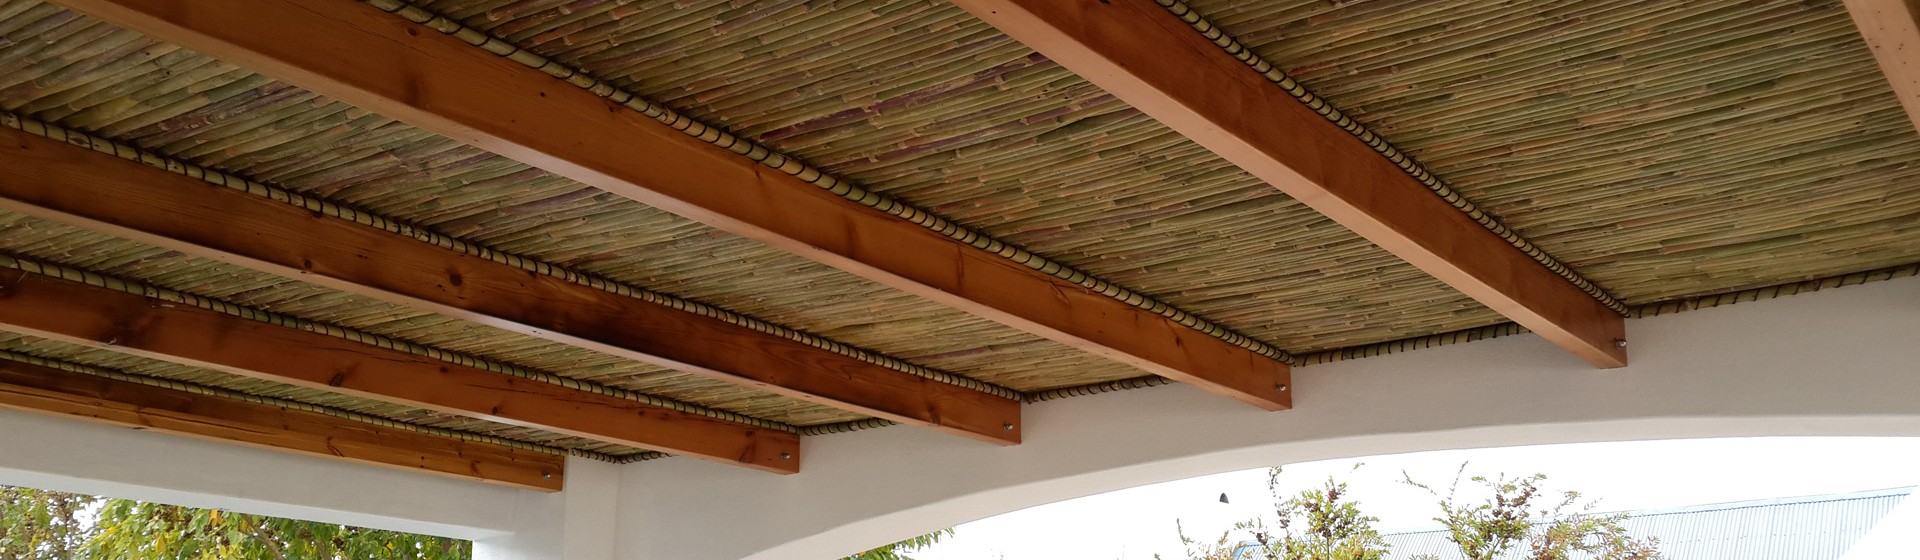 reeded-ceiling